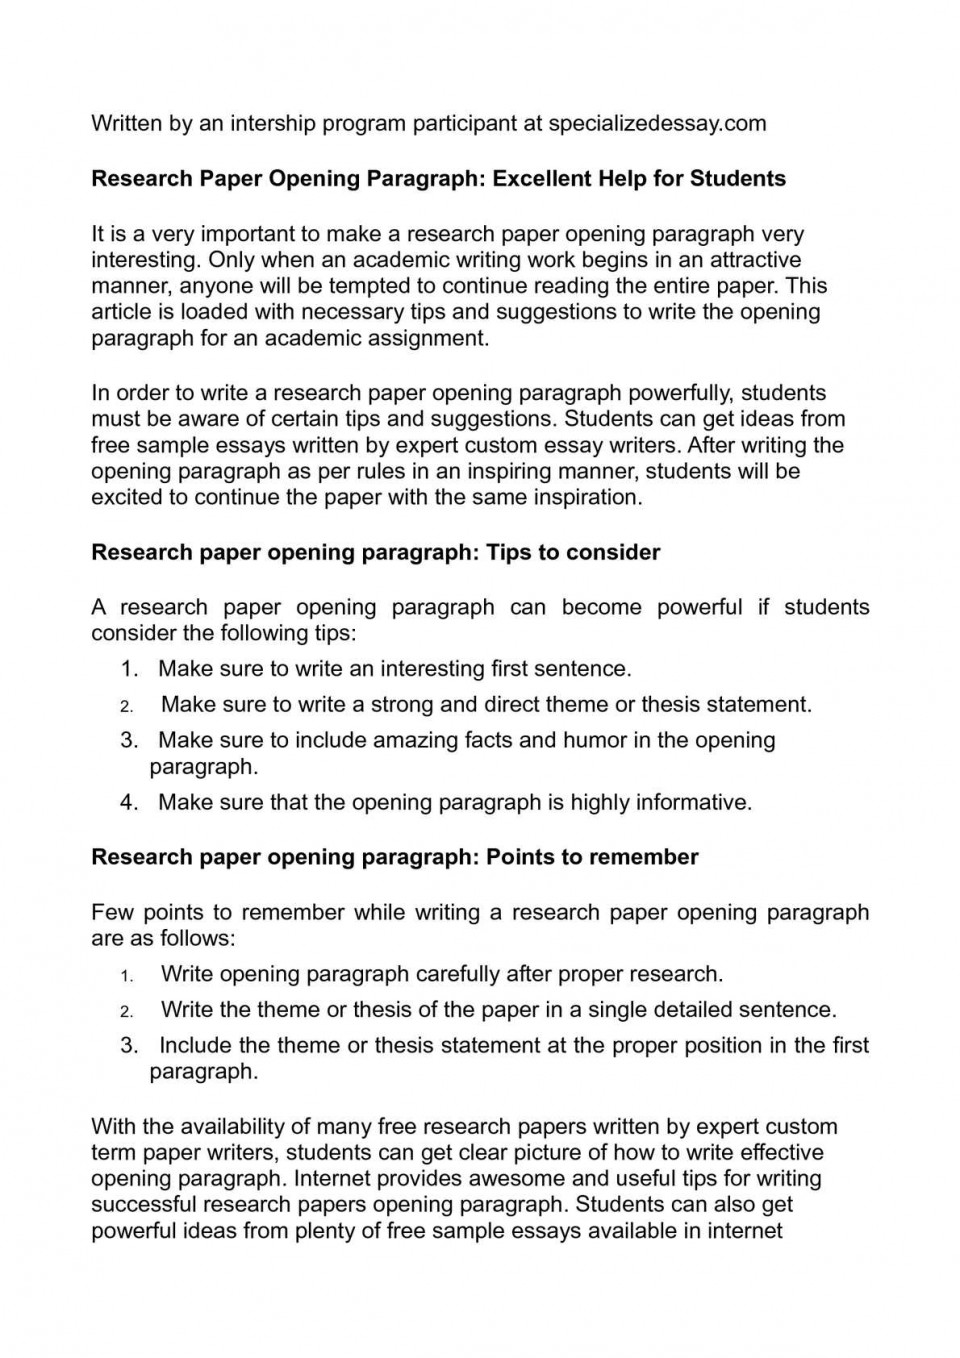 017 Cool Topics To Do Research Paper On Impressive A Interesting For Medical Of In Computer Science Economic 960